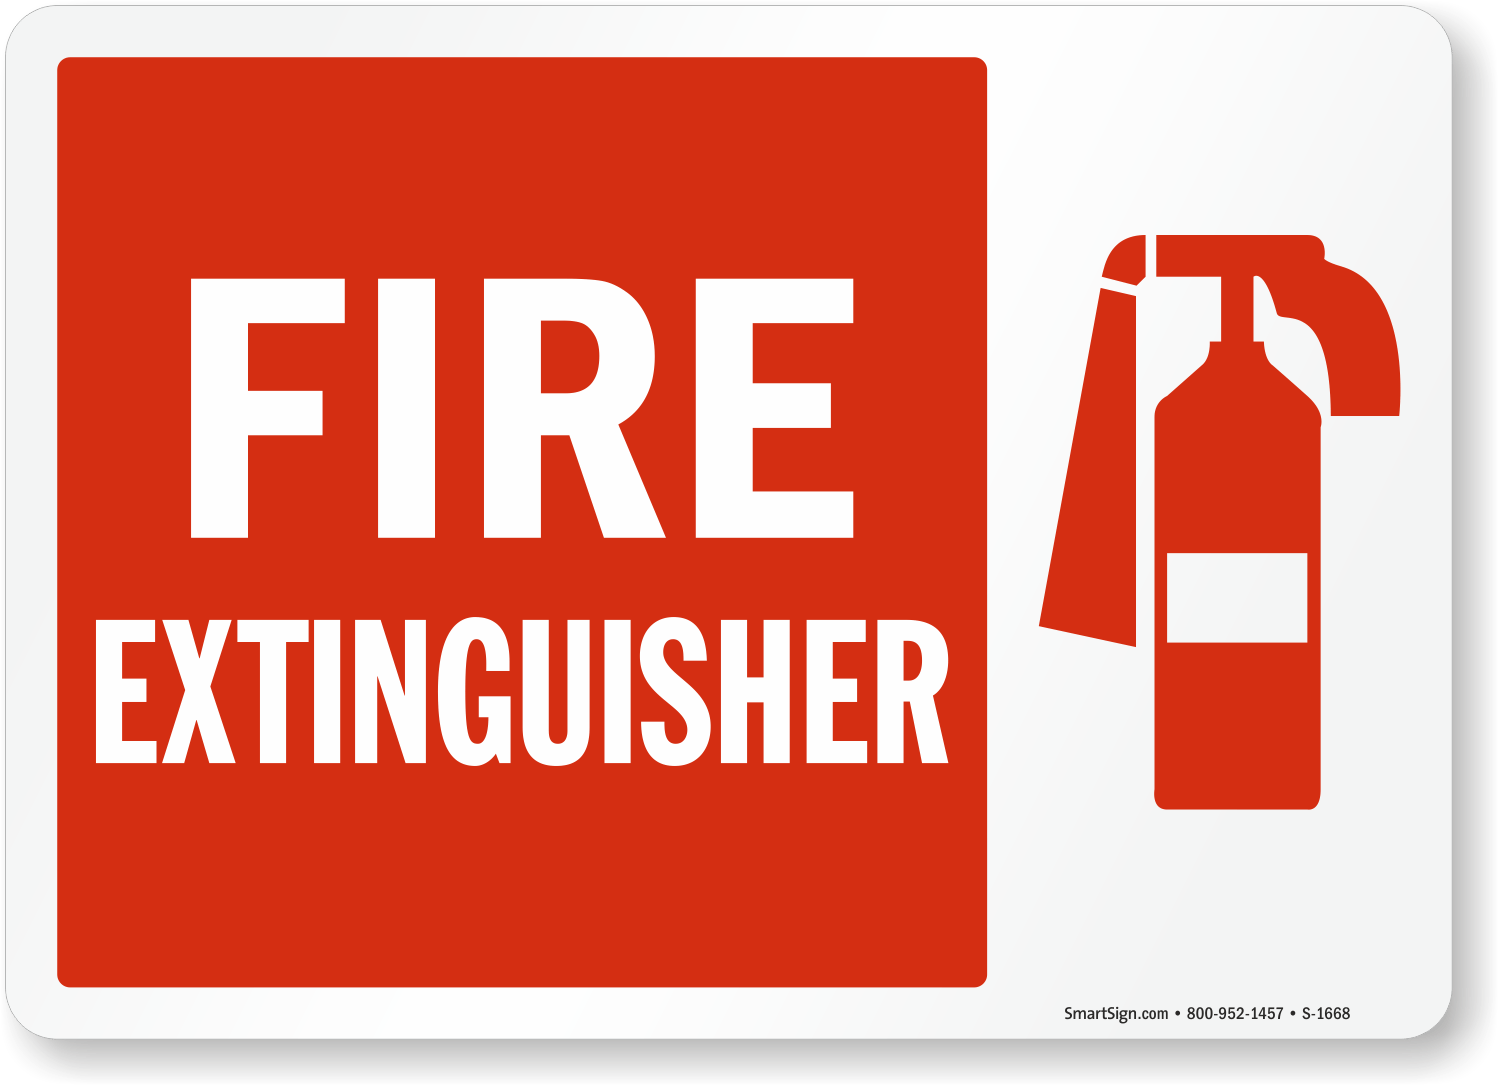 Fire Extinguisher Graphic Sign | Free PDF, SKU: S-1668 ...